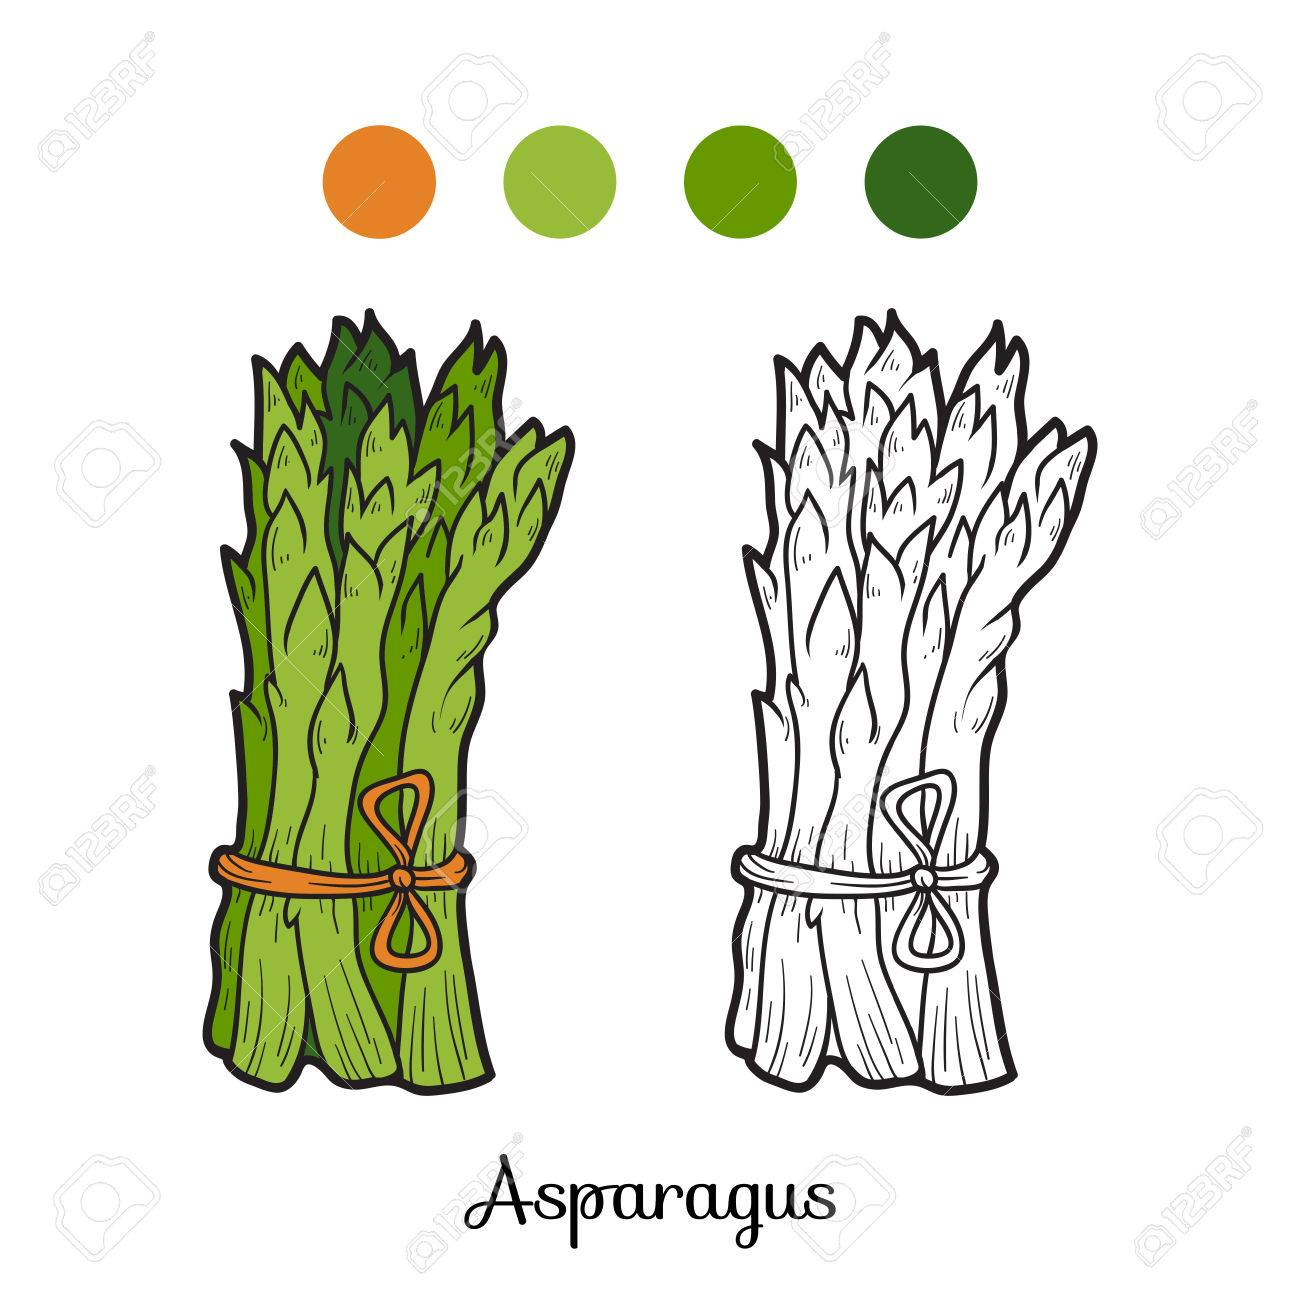 Coloring Book For Children Fruits And Vegetables Asparagus Stock Vector